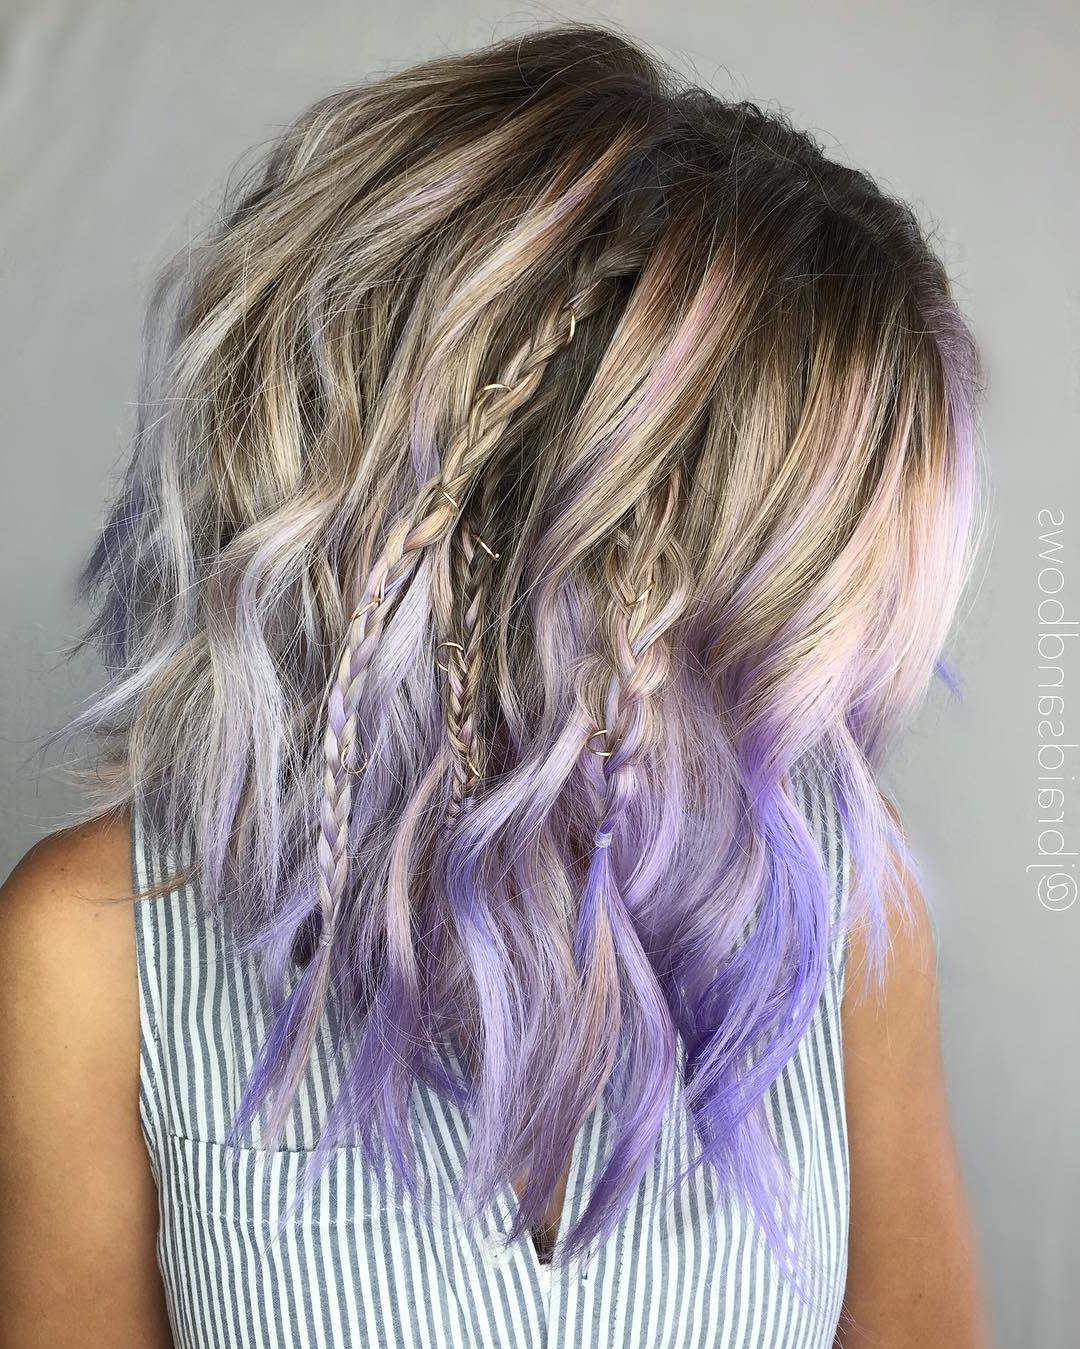 20 Gorgeous Prom Hairstyle Designs For Short Hair: Prom Hairstyles 2017 For Bohemian Short Hairstyles (View 10 of 25)